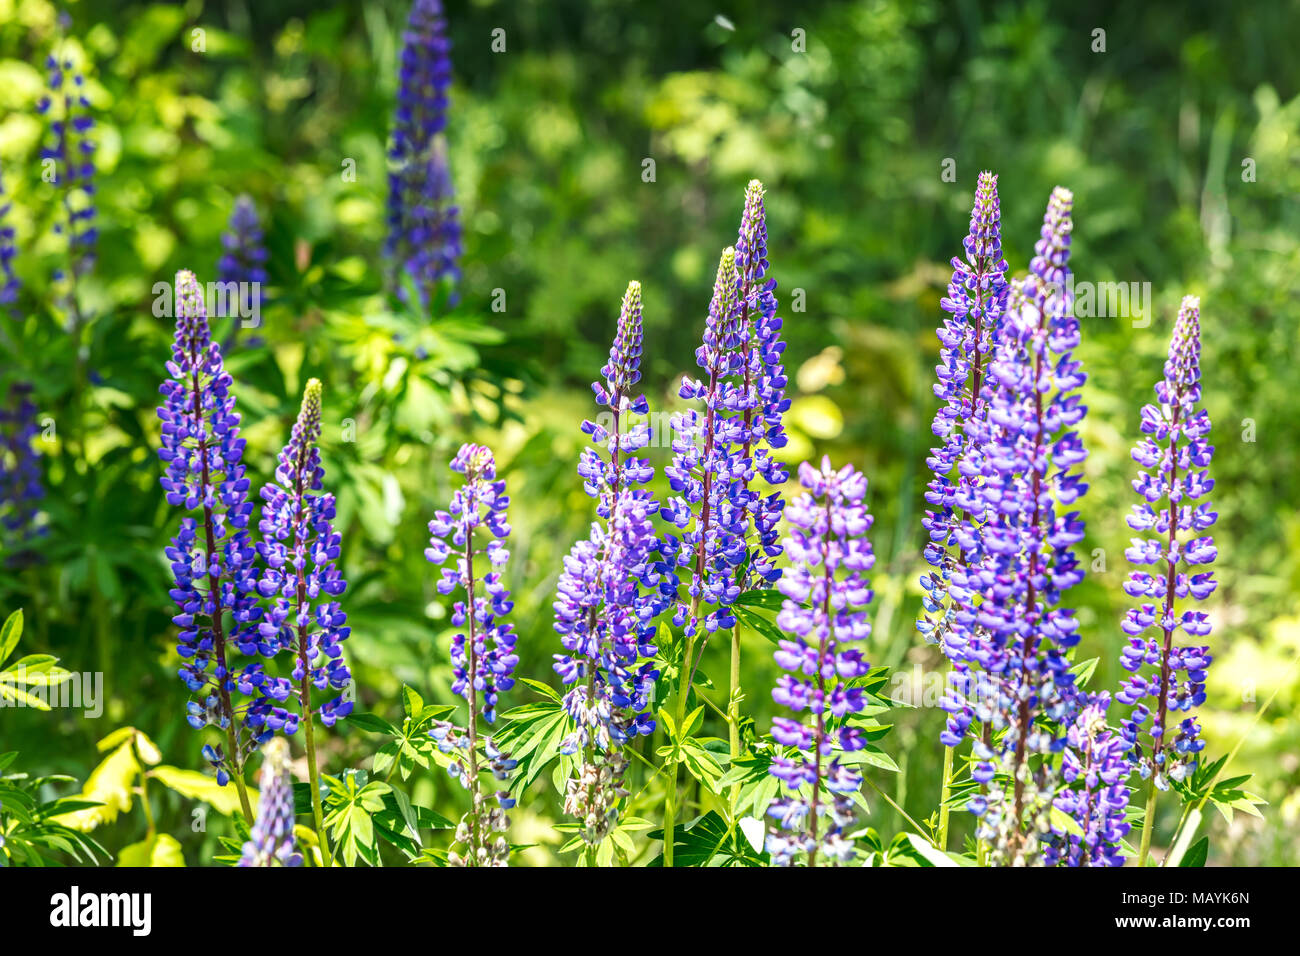 Lupine Field With Purple And Blue Flowers Blooming Wild Flowers In